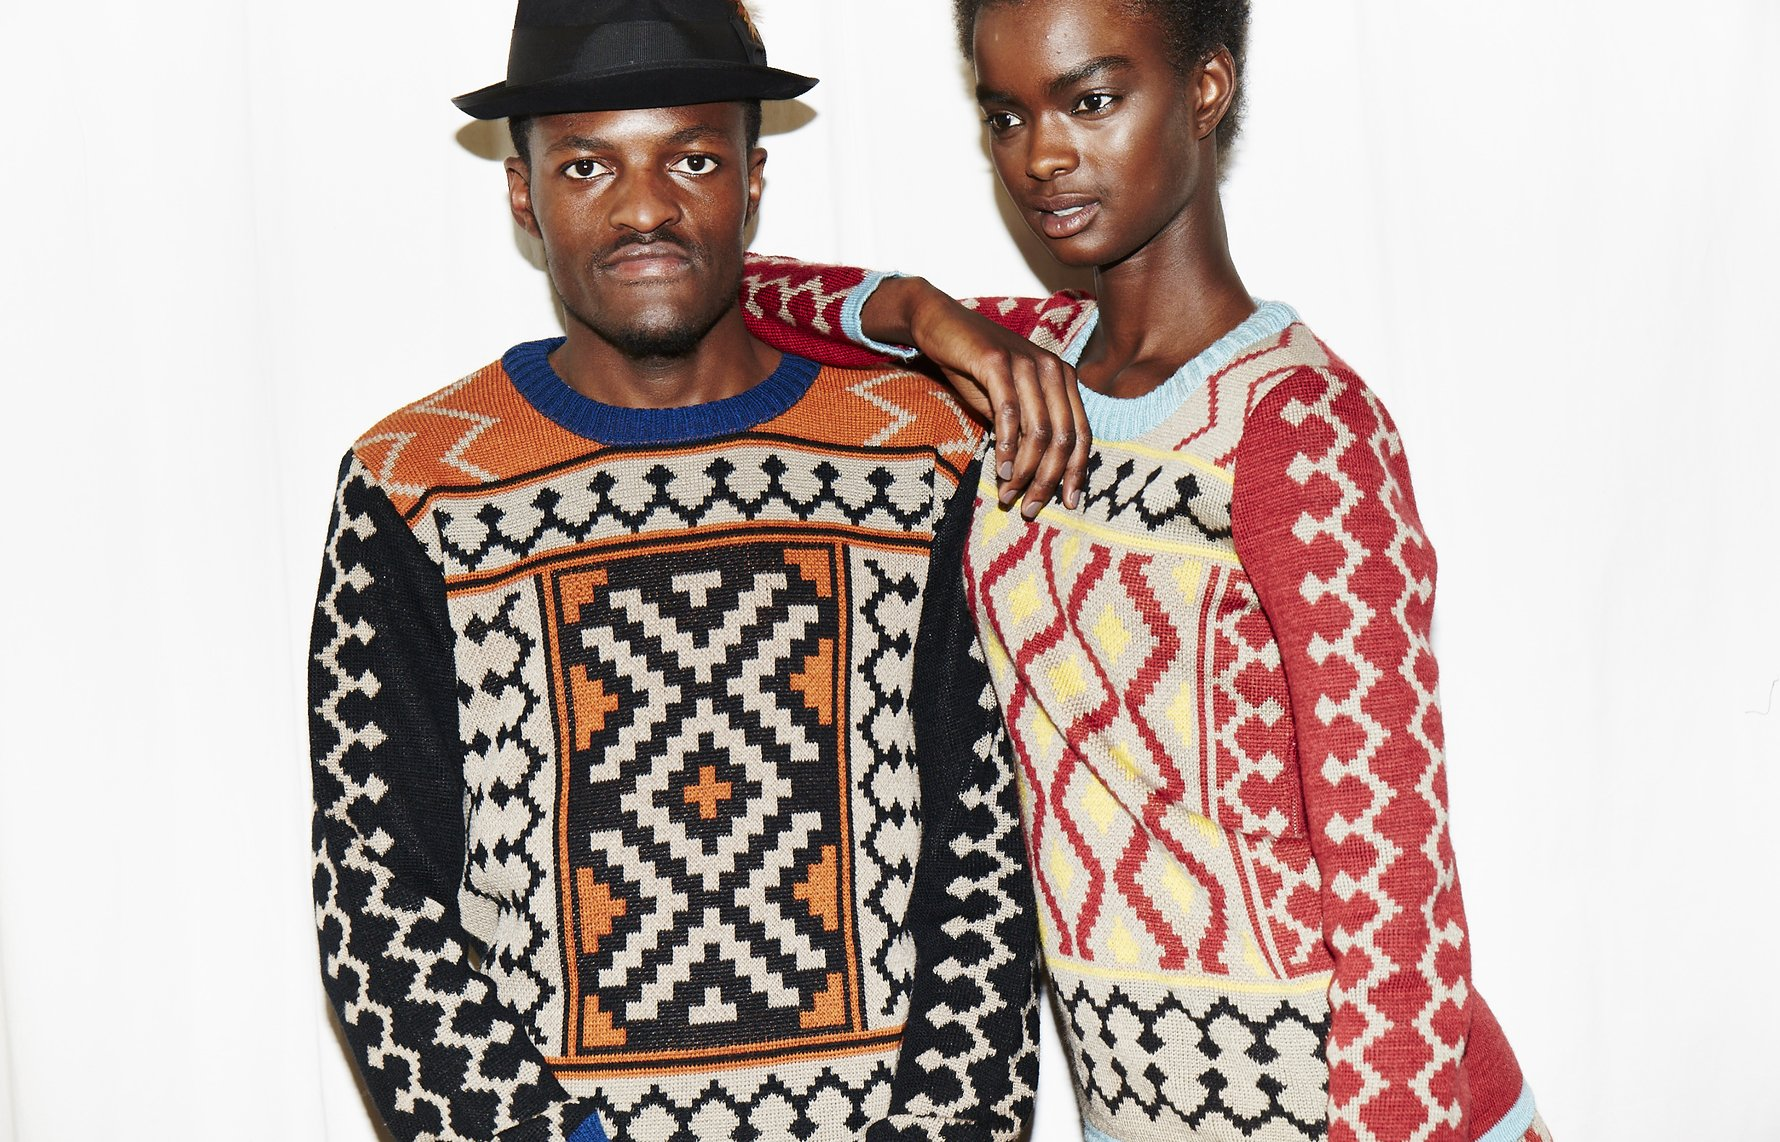 Maxhosa by Laduma shot by Ulrich Knoblauch